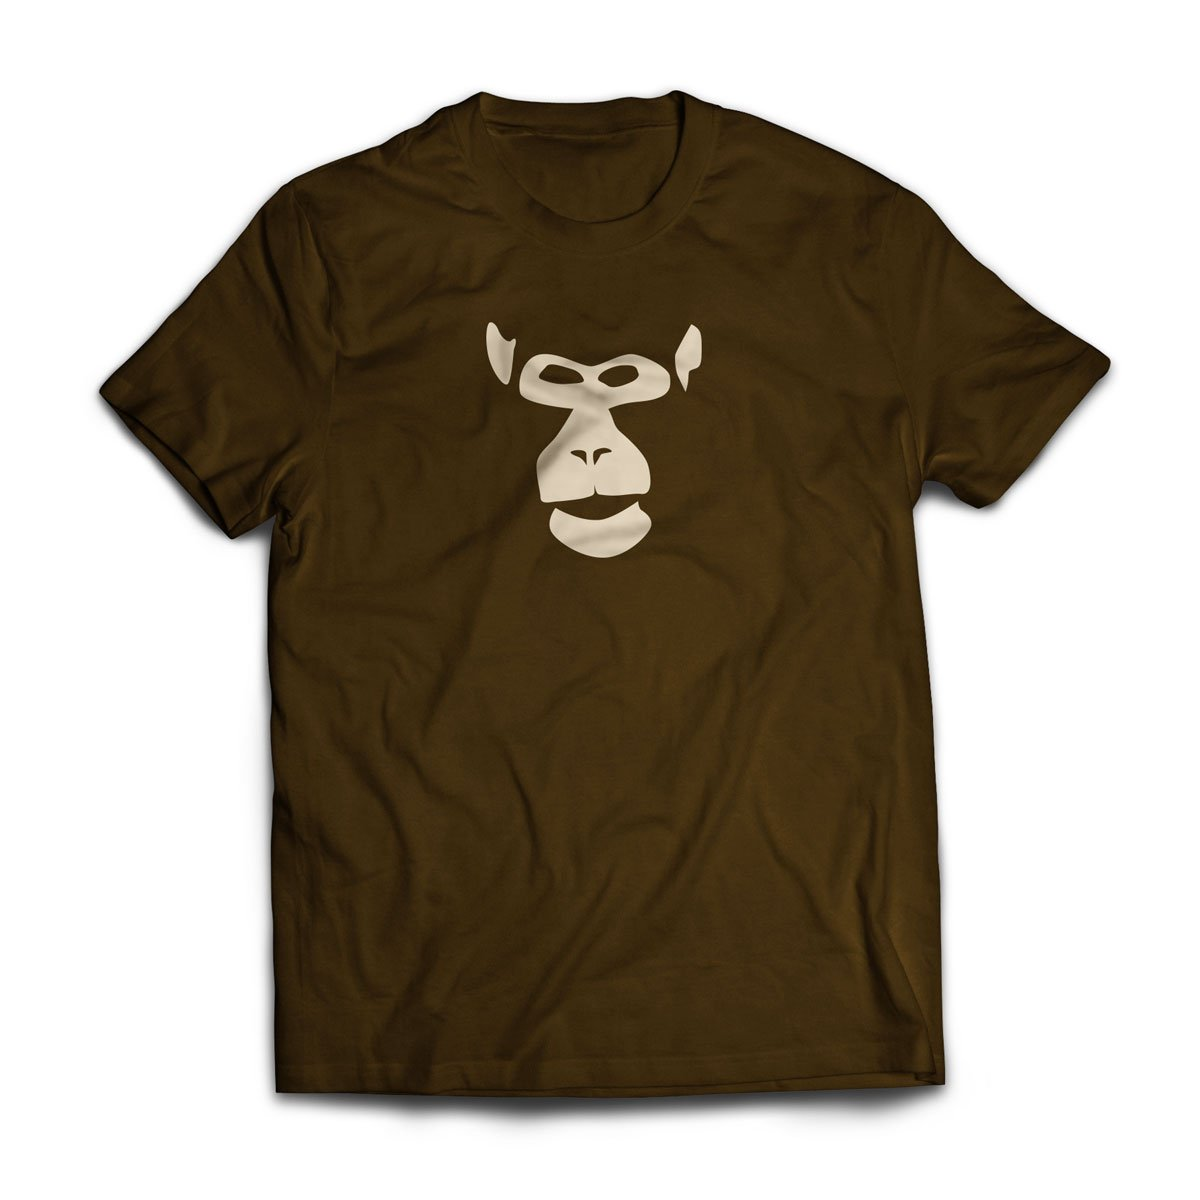 Primates Incorporated monkey face tshirt